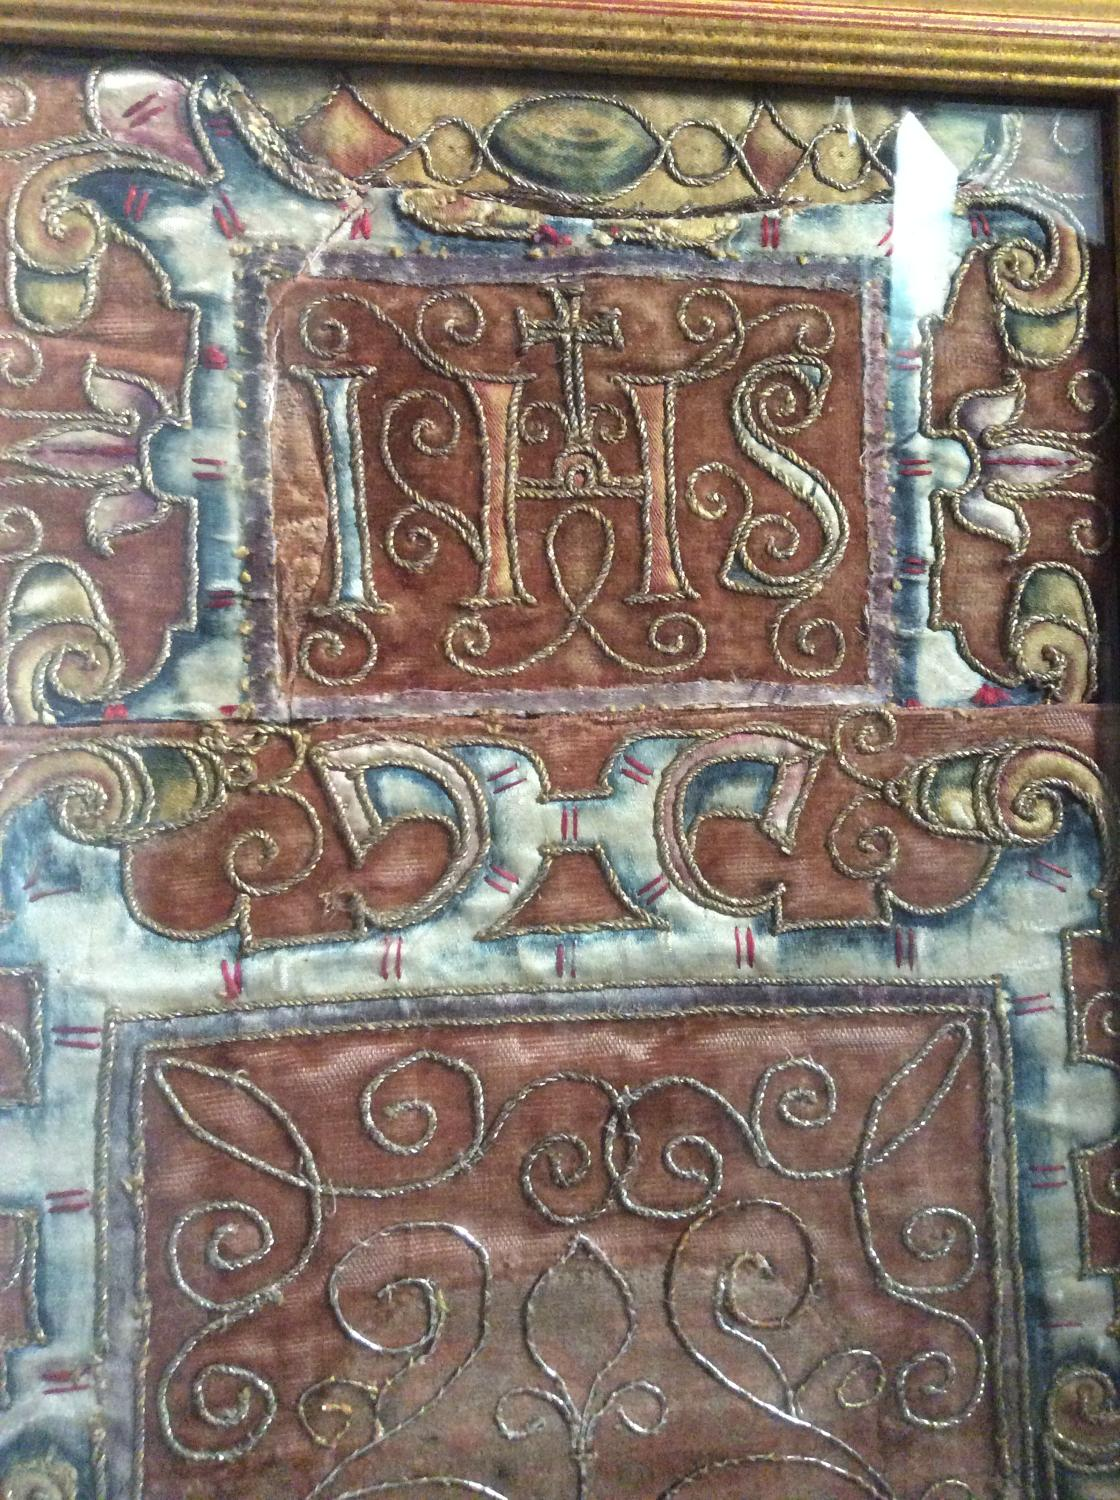 17th Century French tapestry fragment